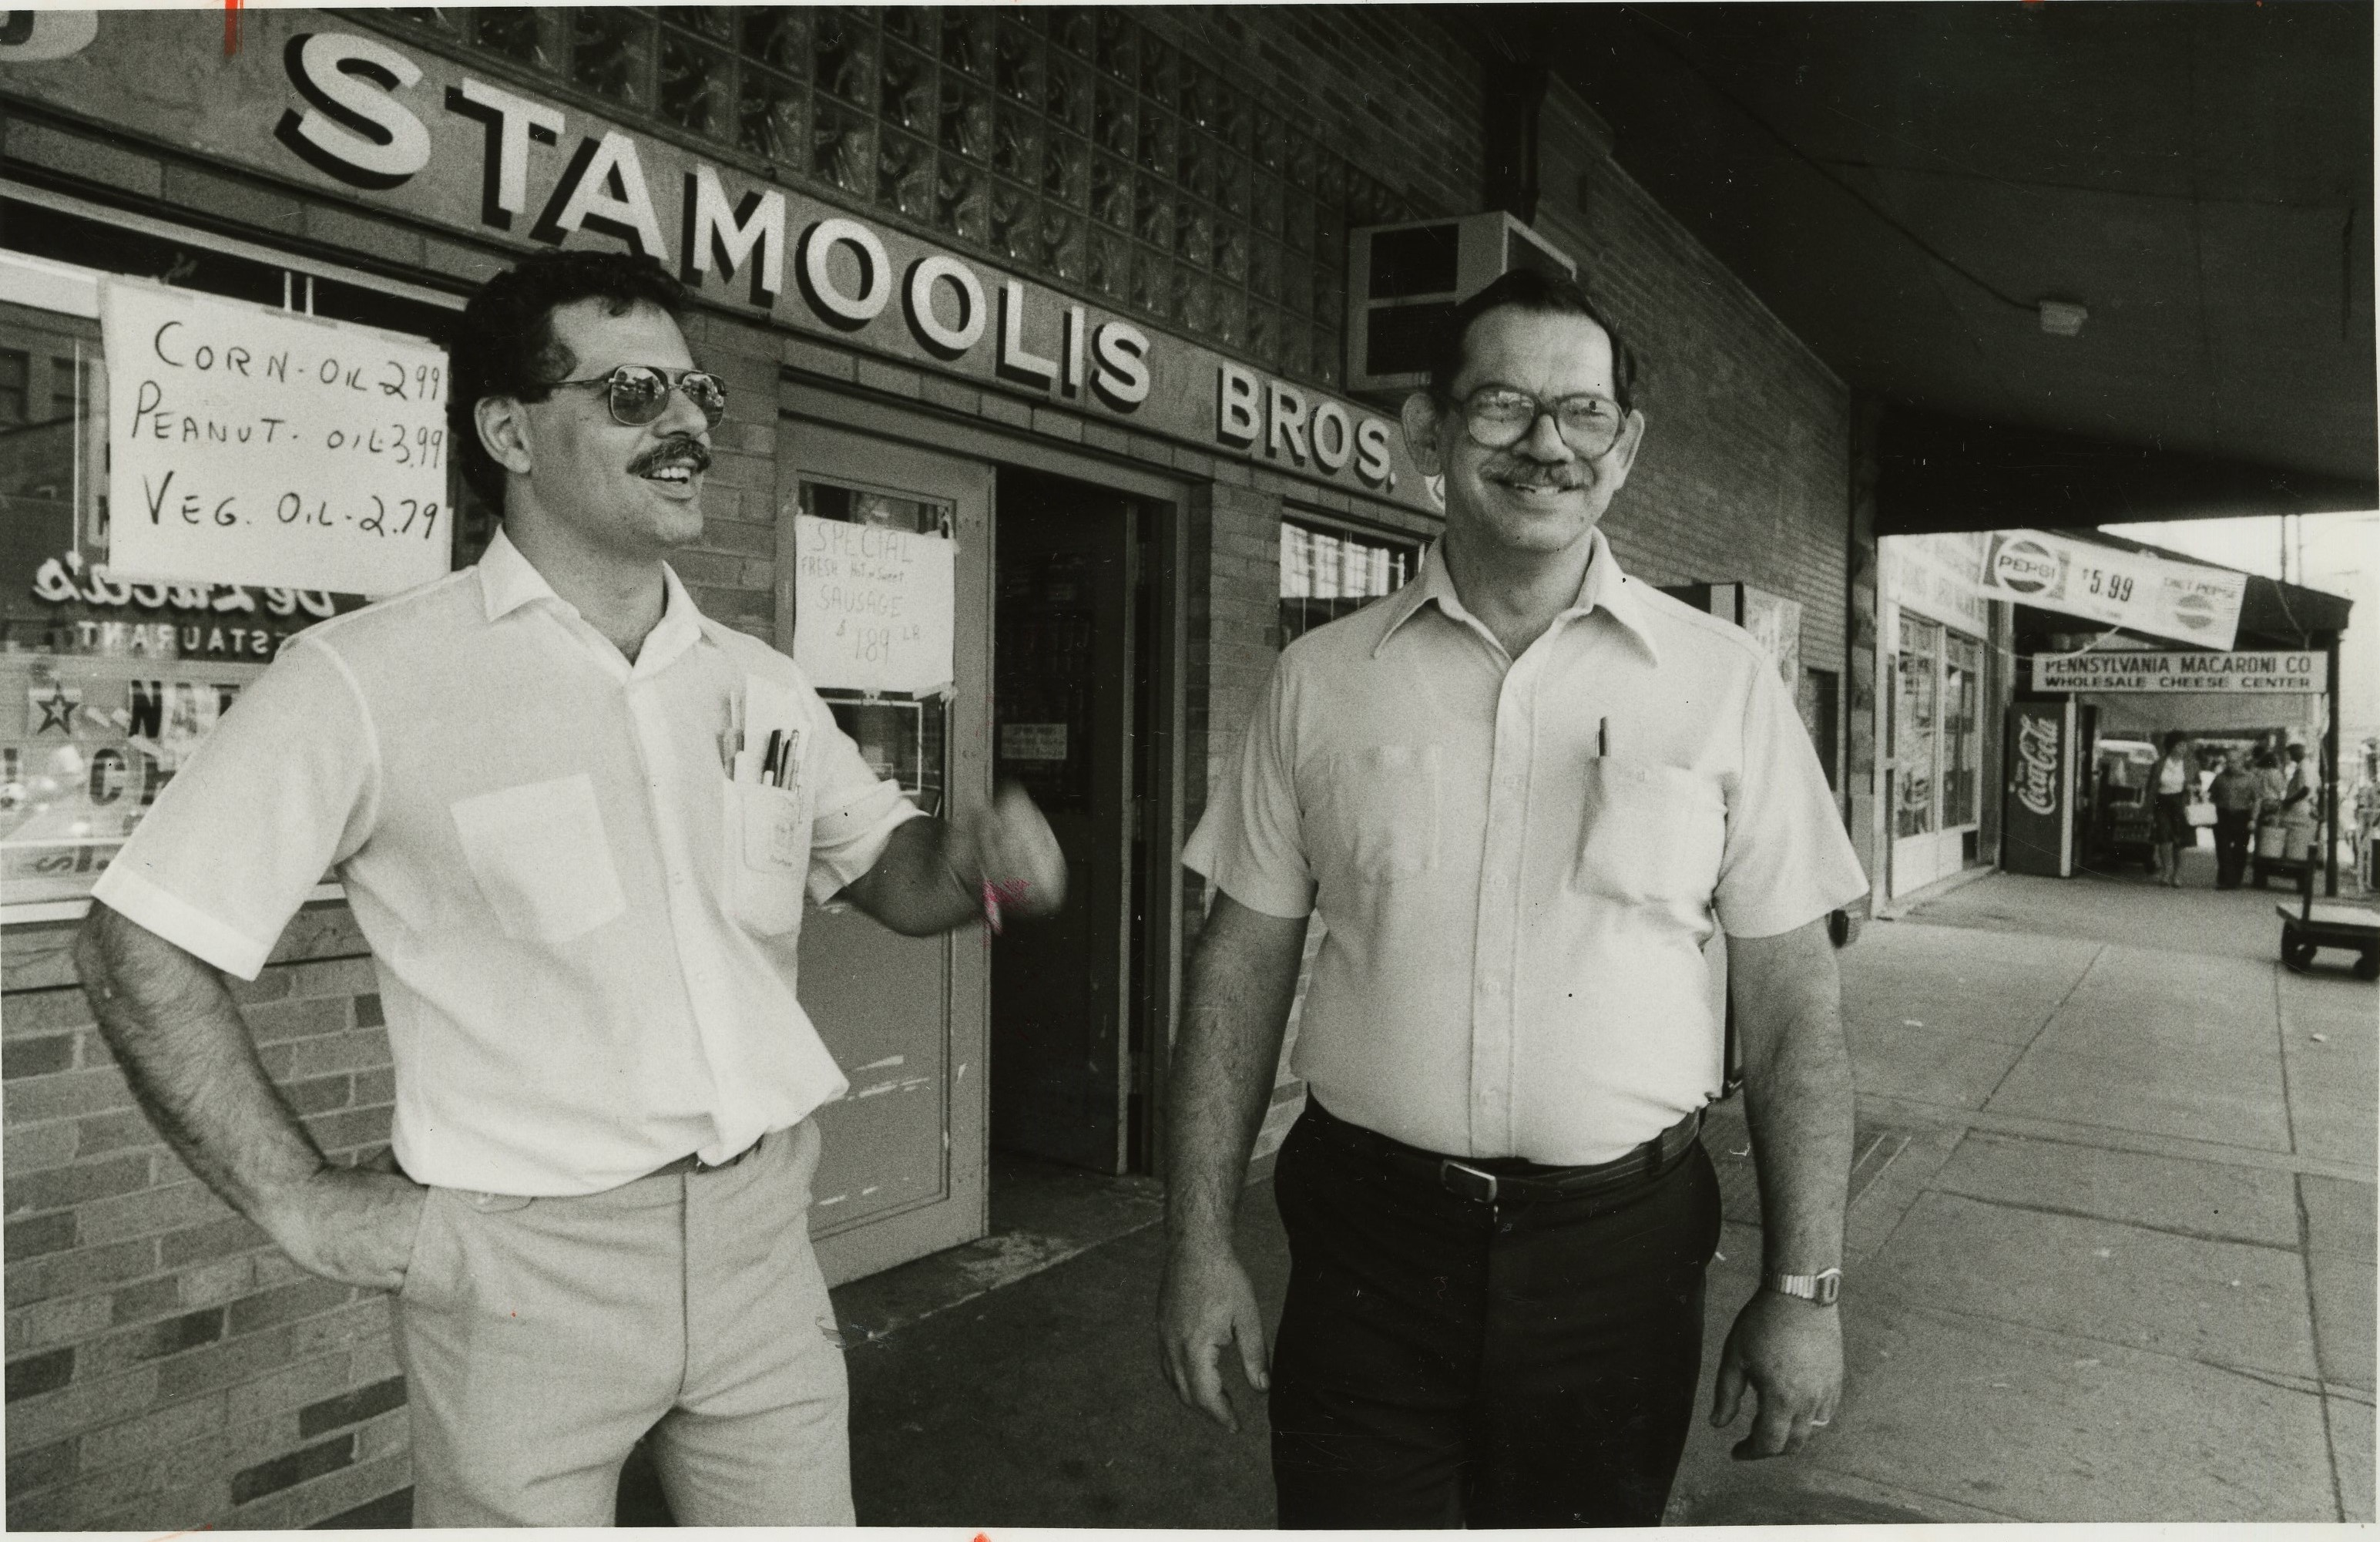 Pete and Gus Stamooli stand in front of Stamooli Brothers in the Strip on this October day in 1986. (John Sale/The Pittsburgh Press)